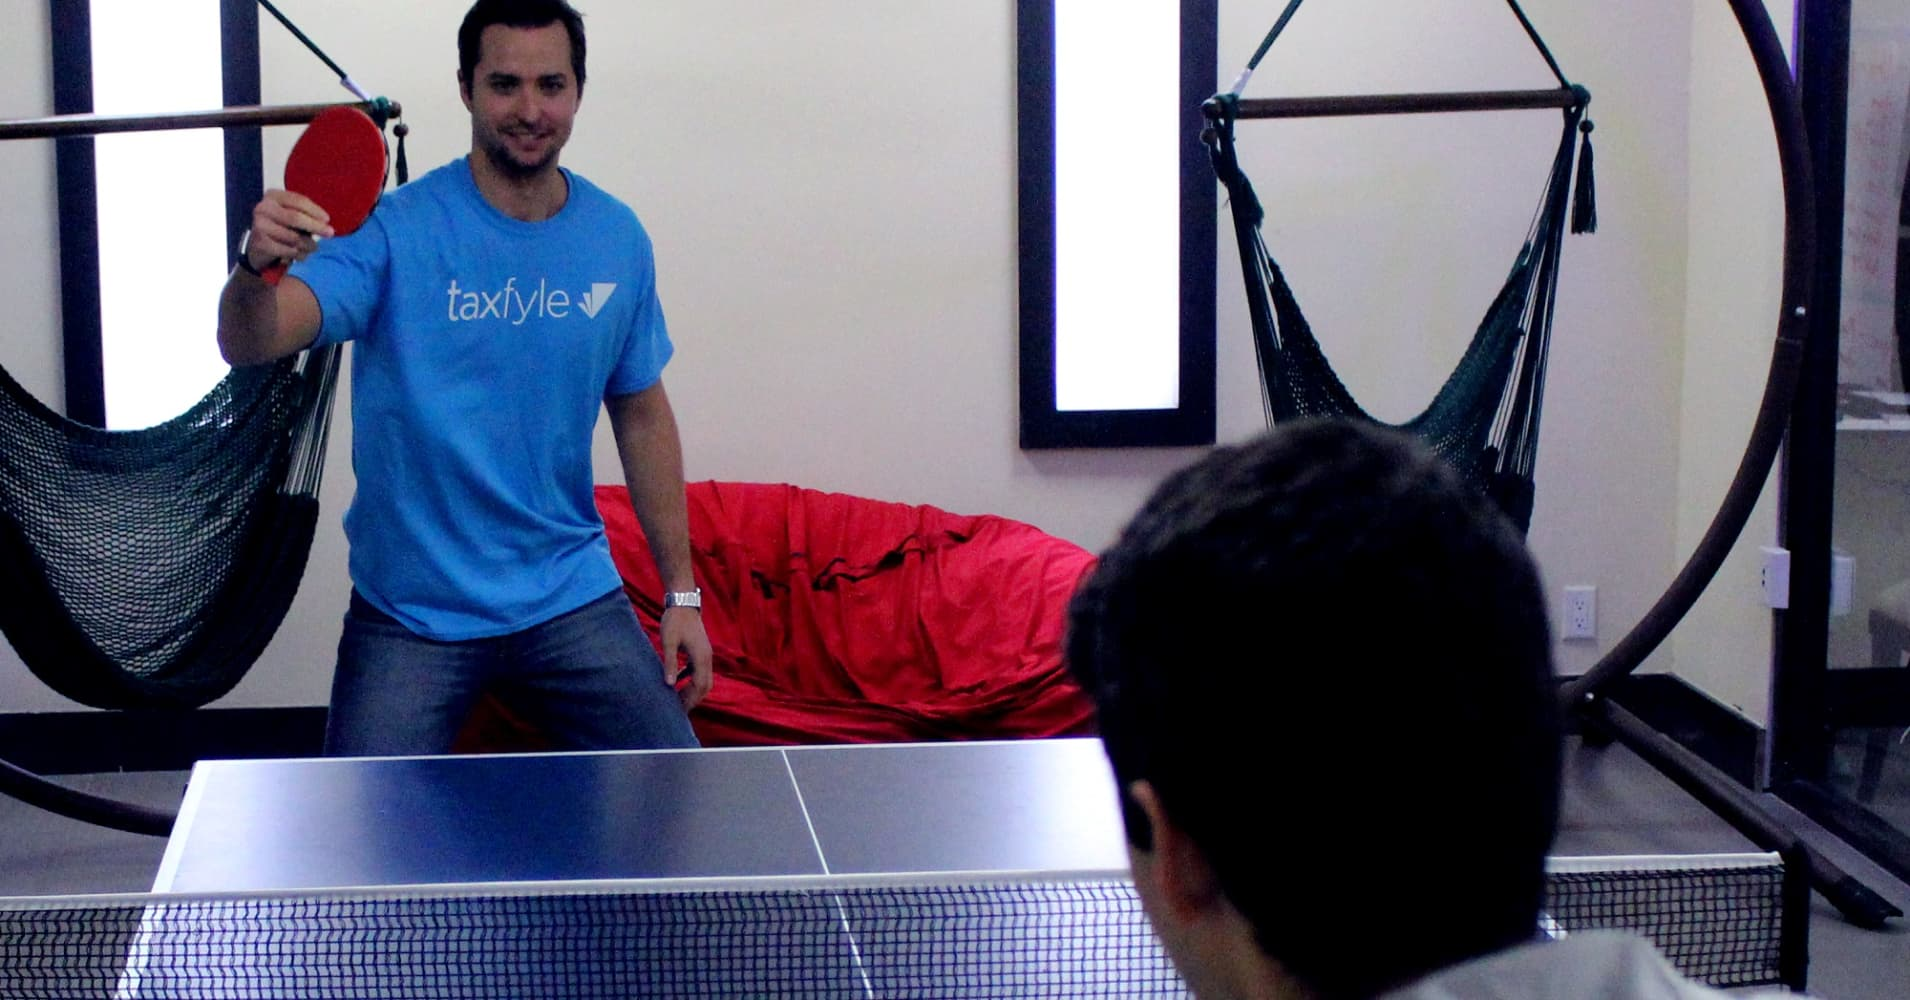 Taxfyle has two ping pong tables in their Miami office.